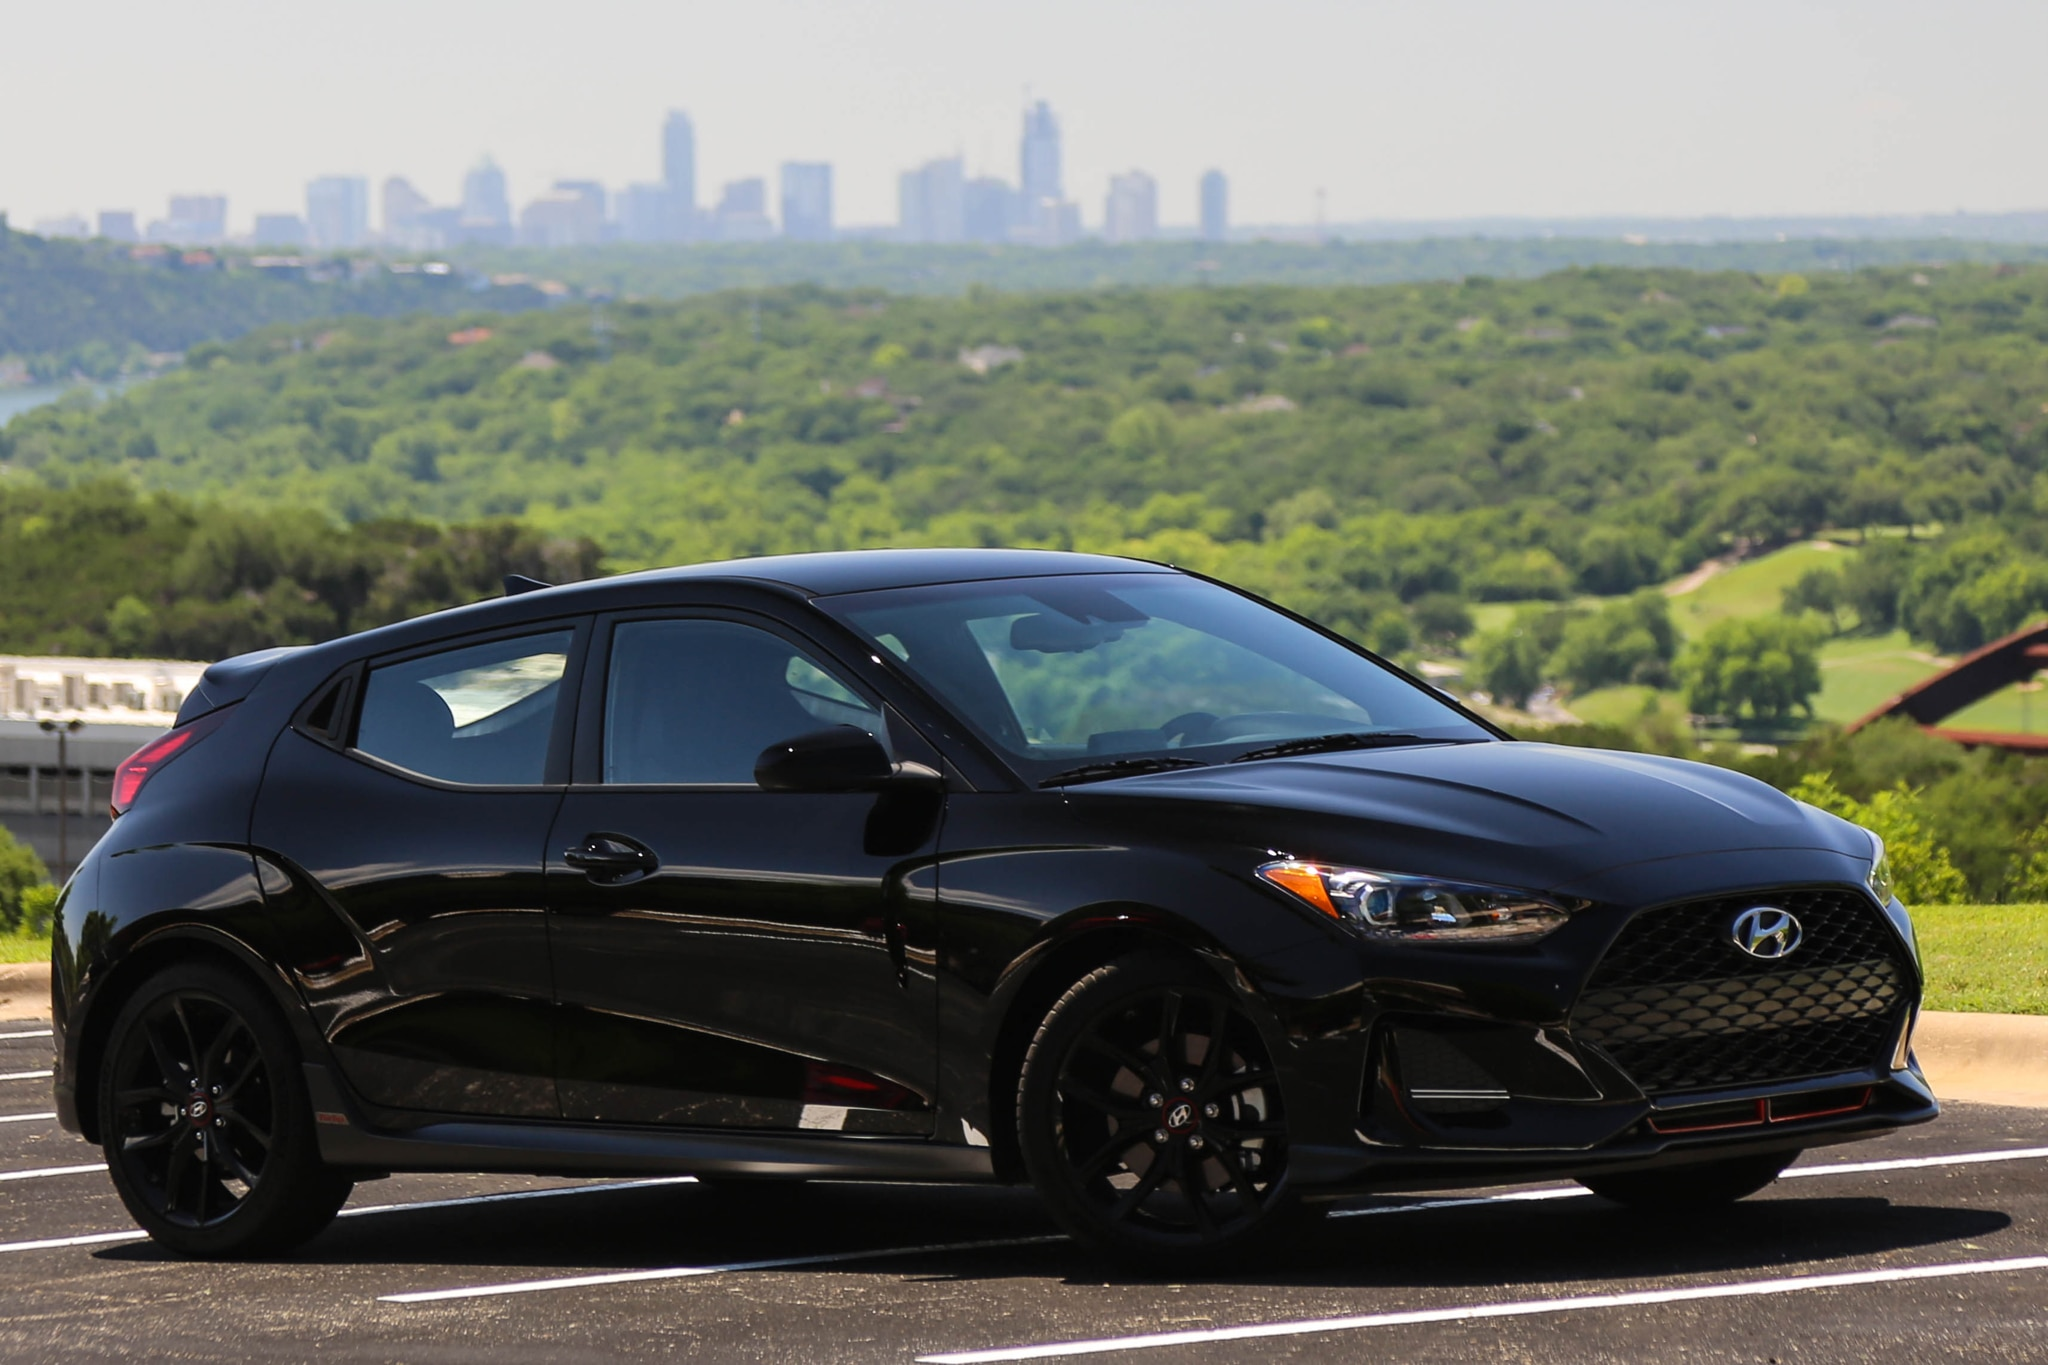 47 The Best 2019 Hyundai Veloster Turbo Pricing